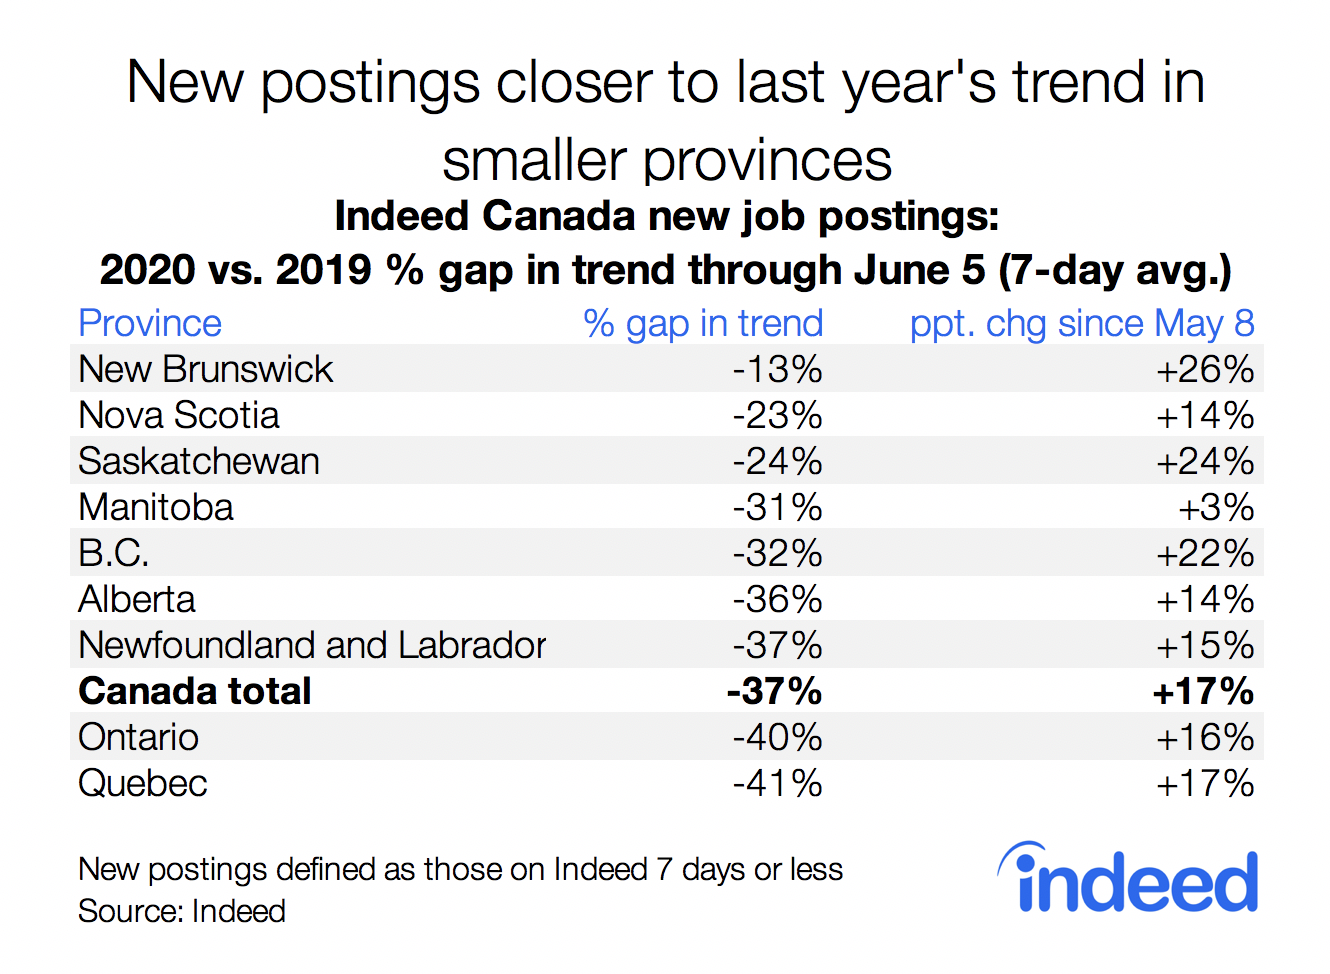 new postings closer to last year's trend in smaller provinces